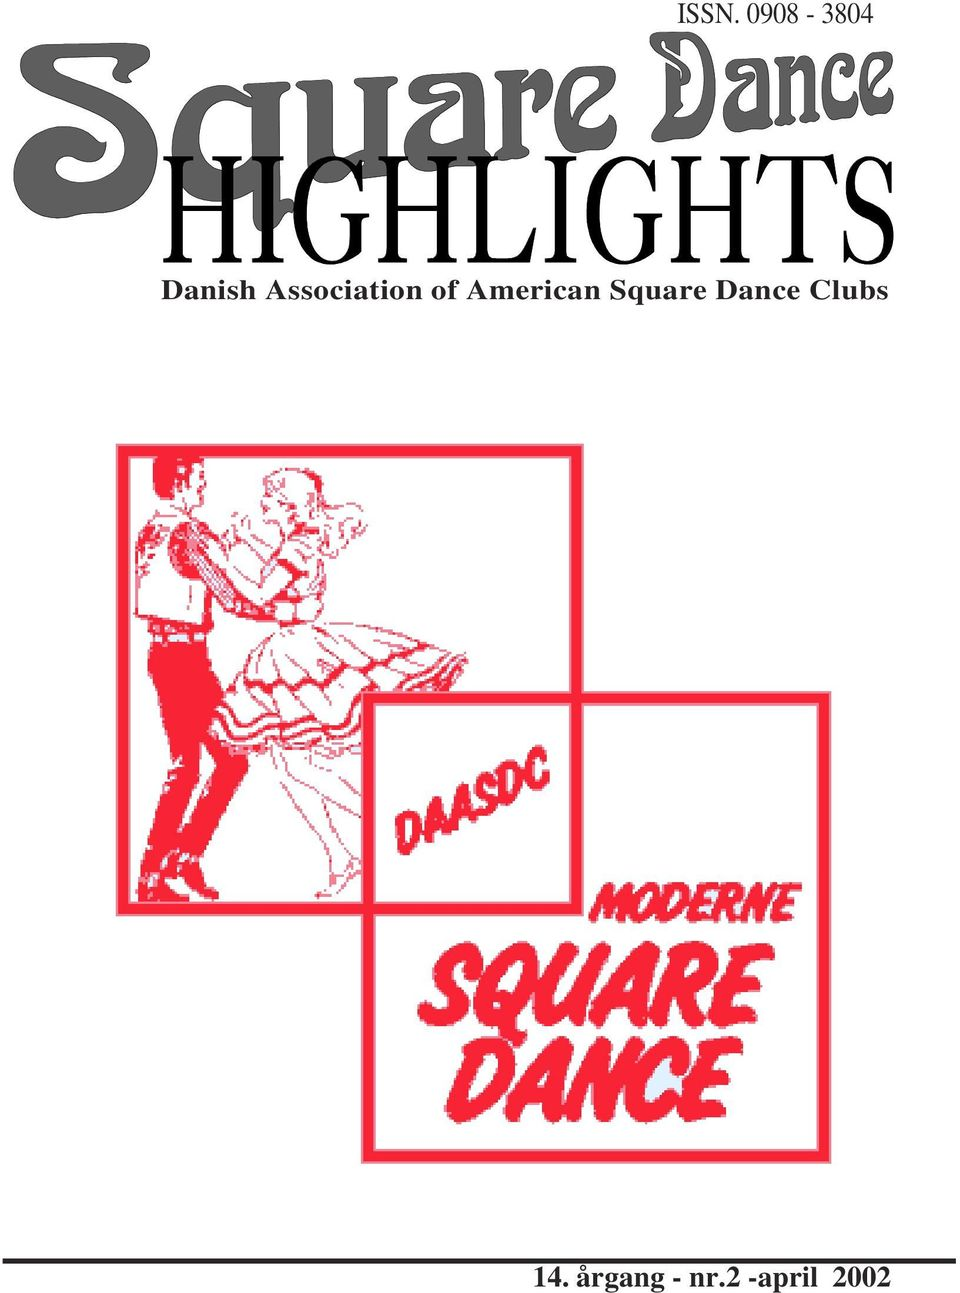 Square Dance Clubs 14.